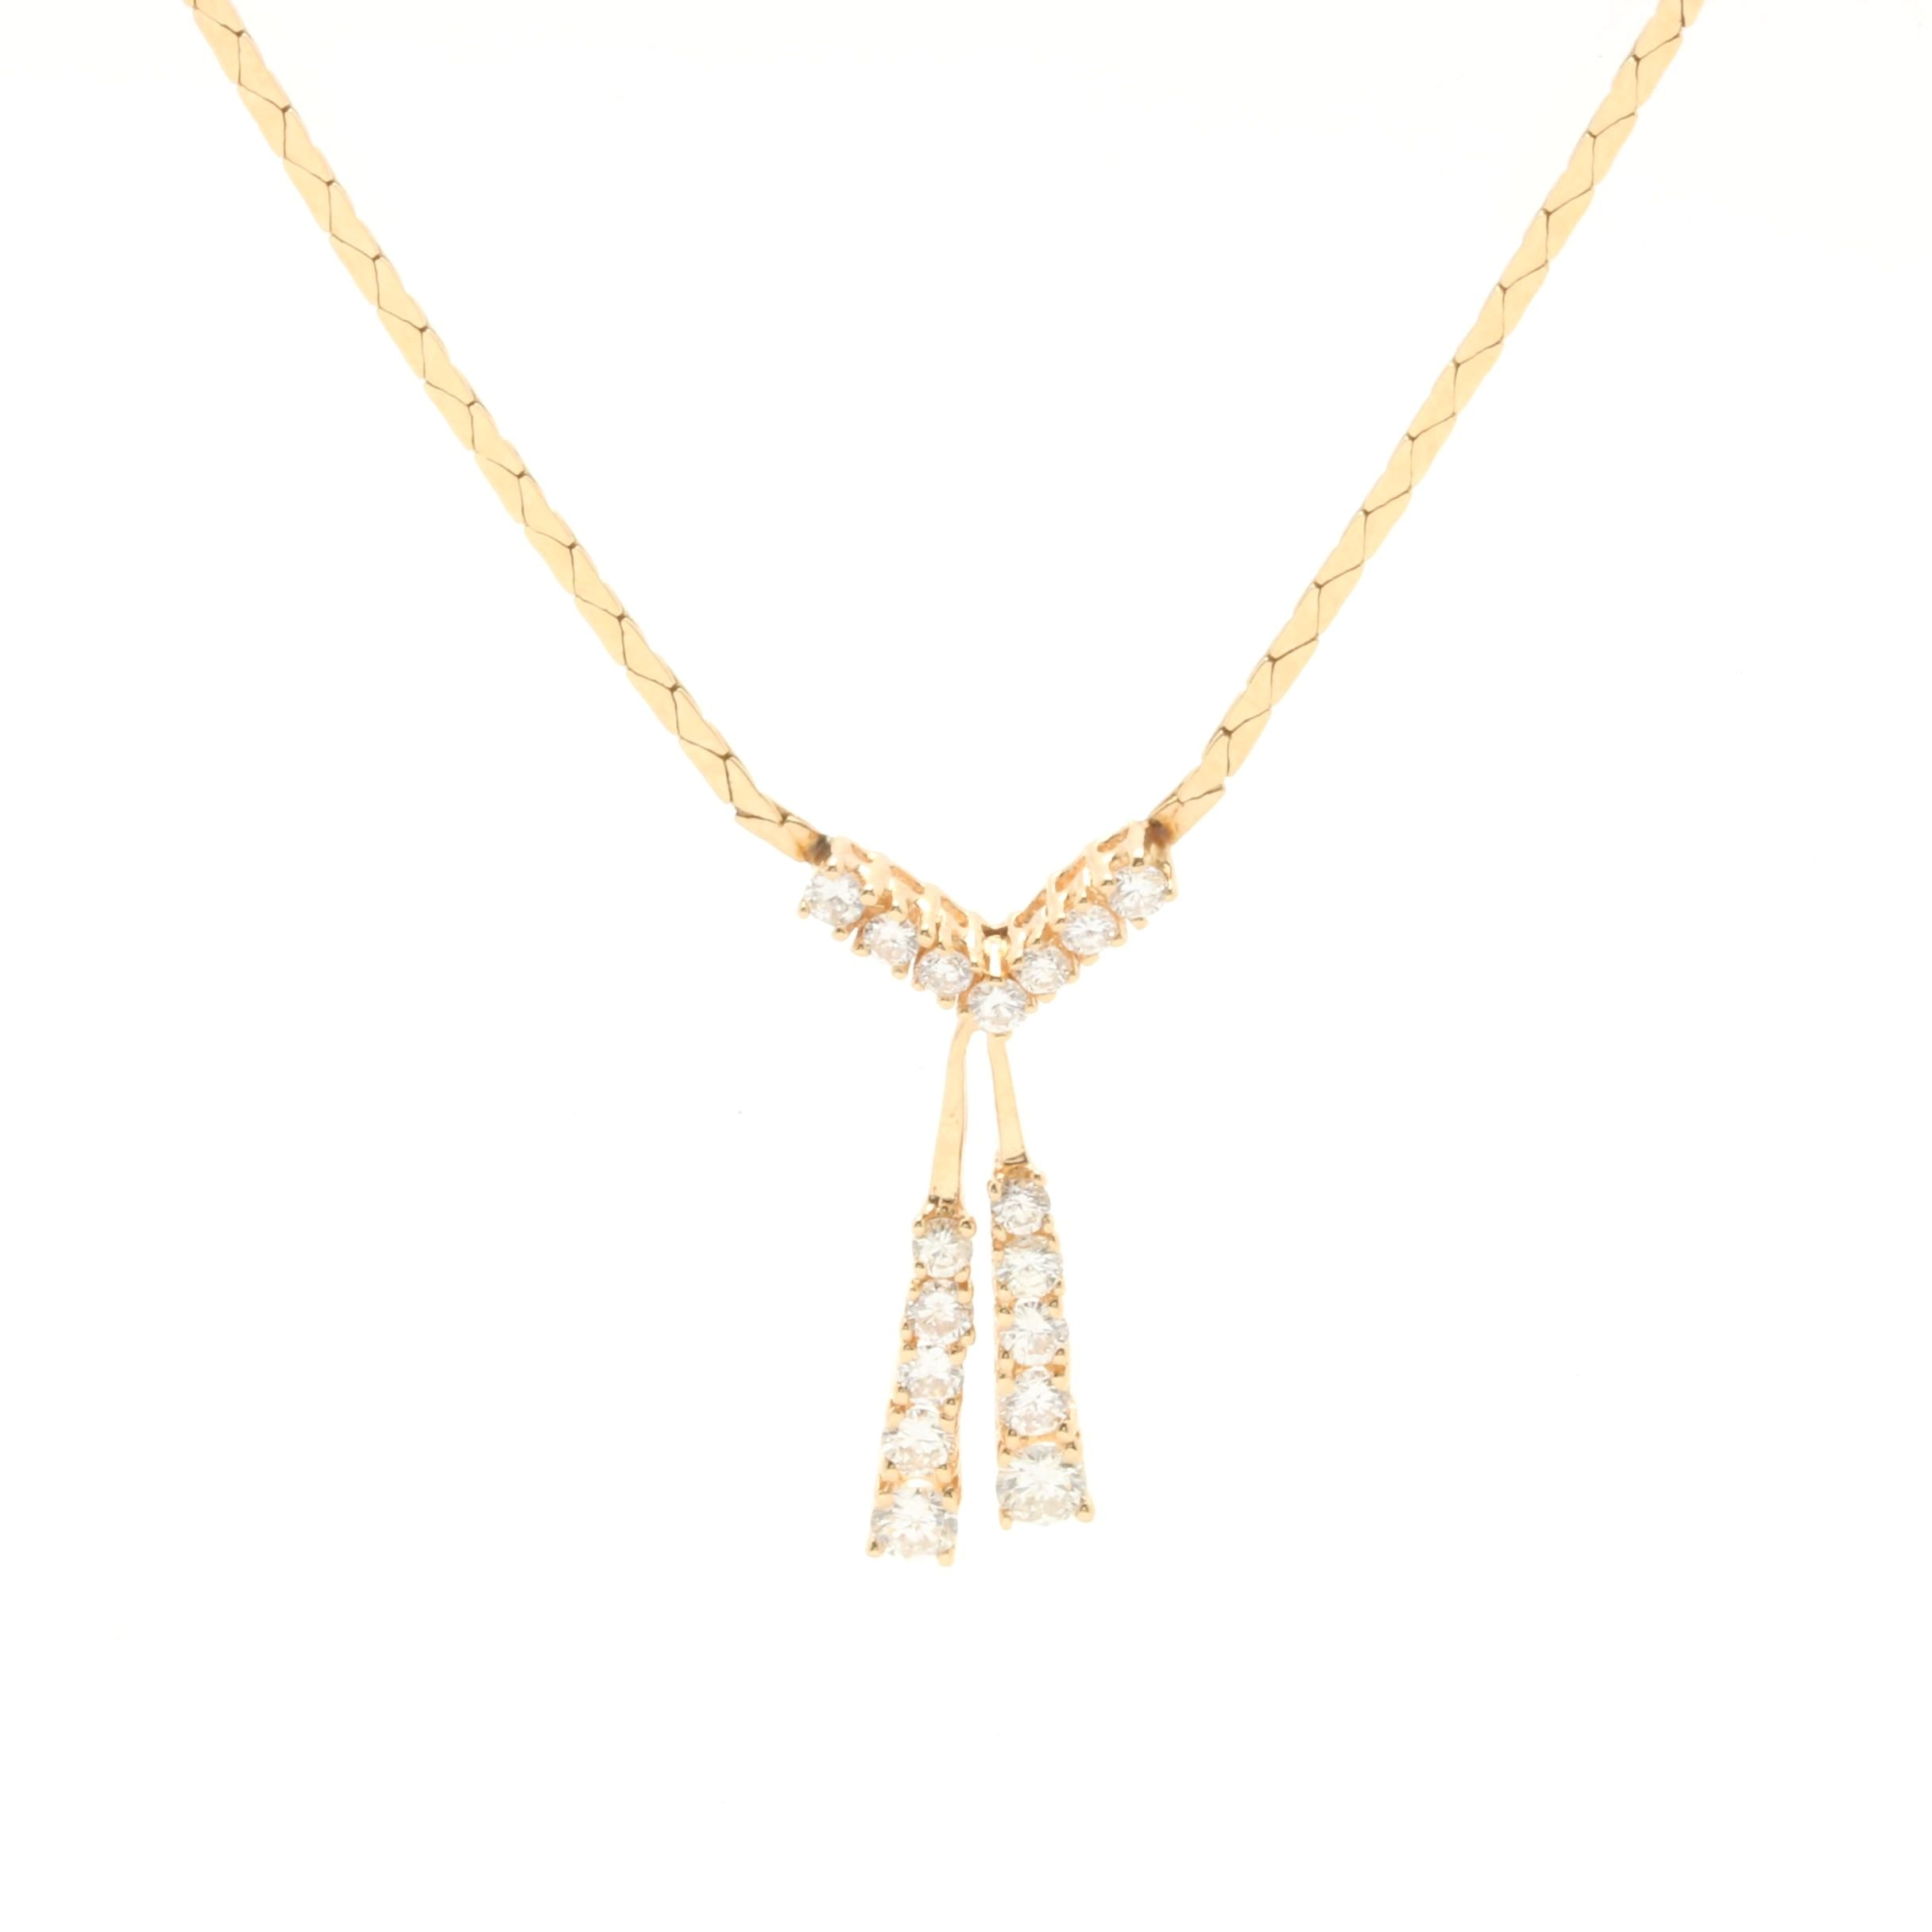 14K Yellow Gold 1.50 CTW Diamond Pendant Necklace